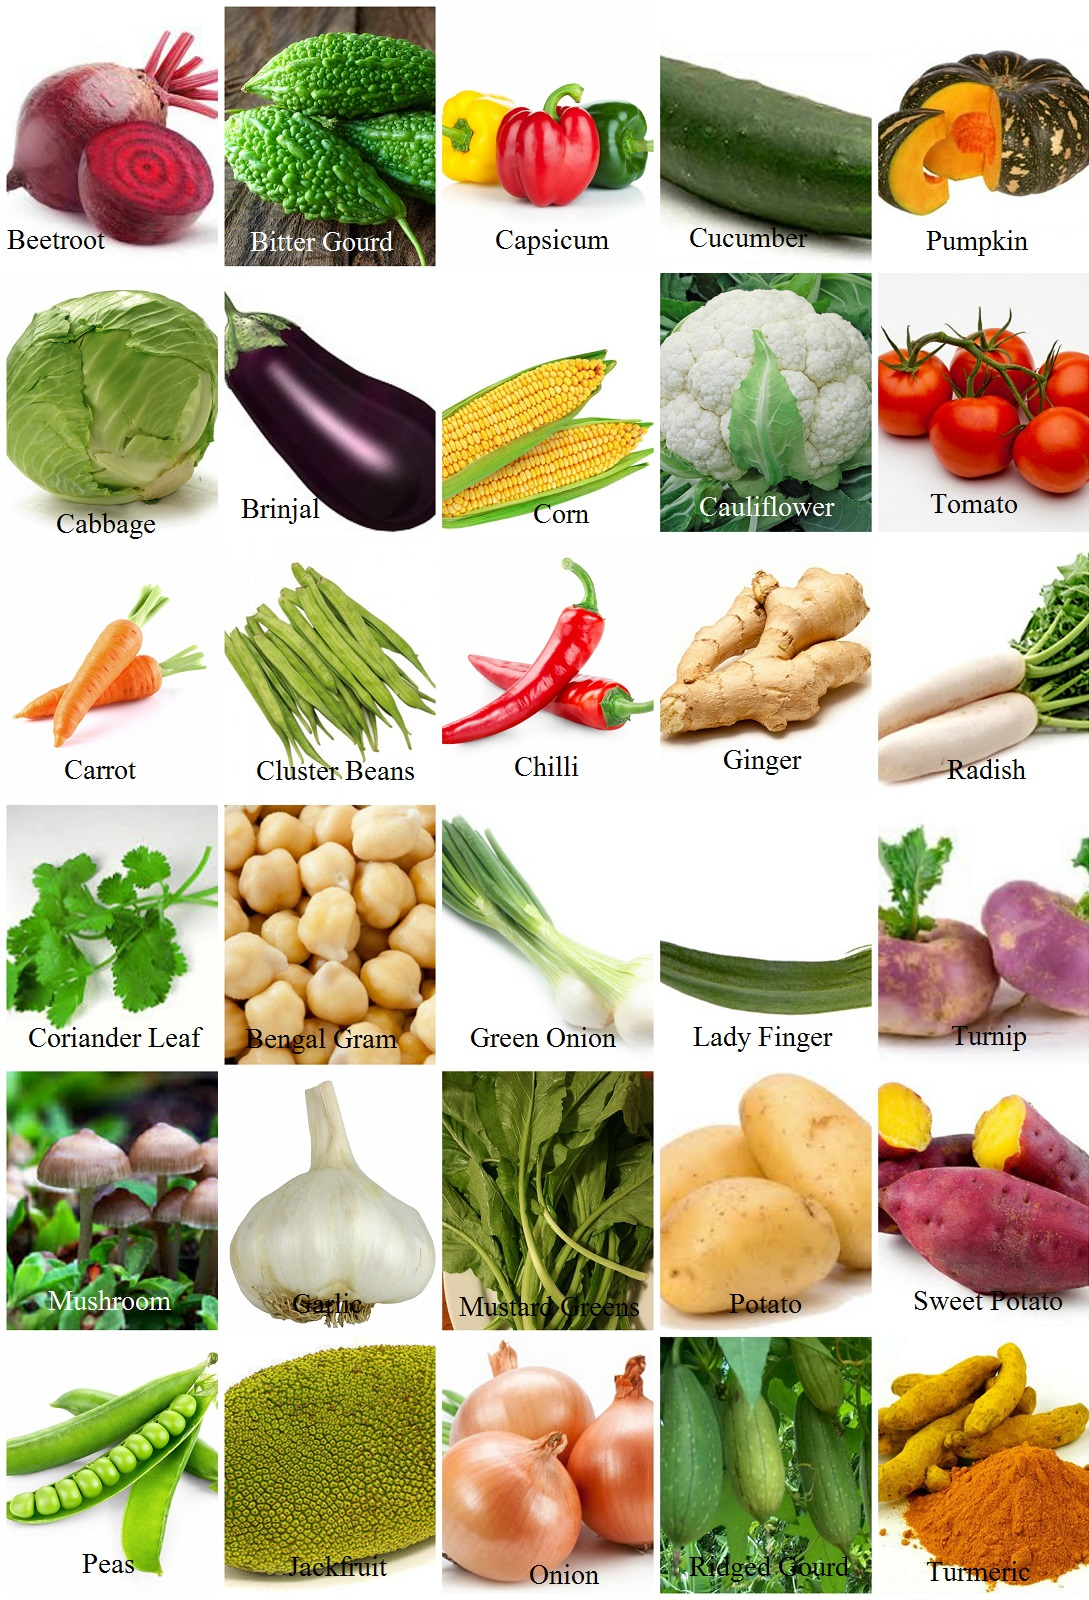 Vegetables Name With Pictures In English - Vegetable Images